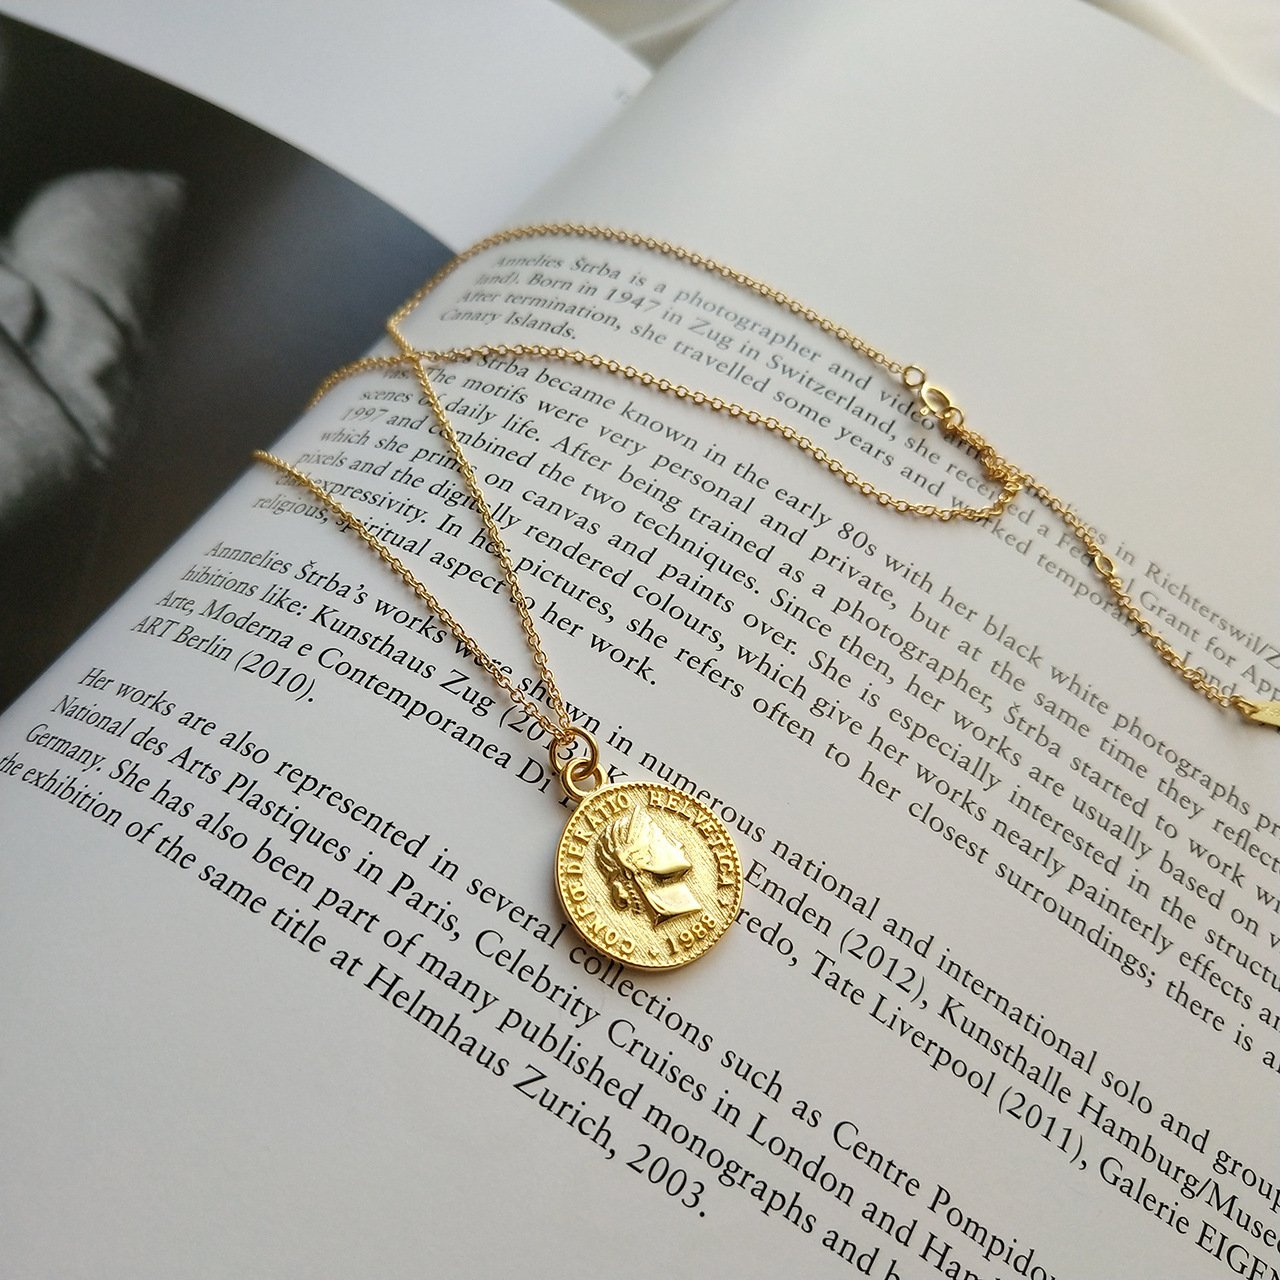 925 Sterling Silver Chain Necklace Jewelry Charm Gold Coin Pendent Simple Delicate Chic Fashion by yomee (Image #2)